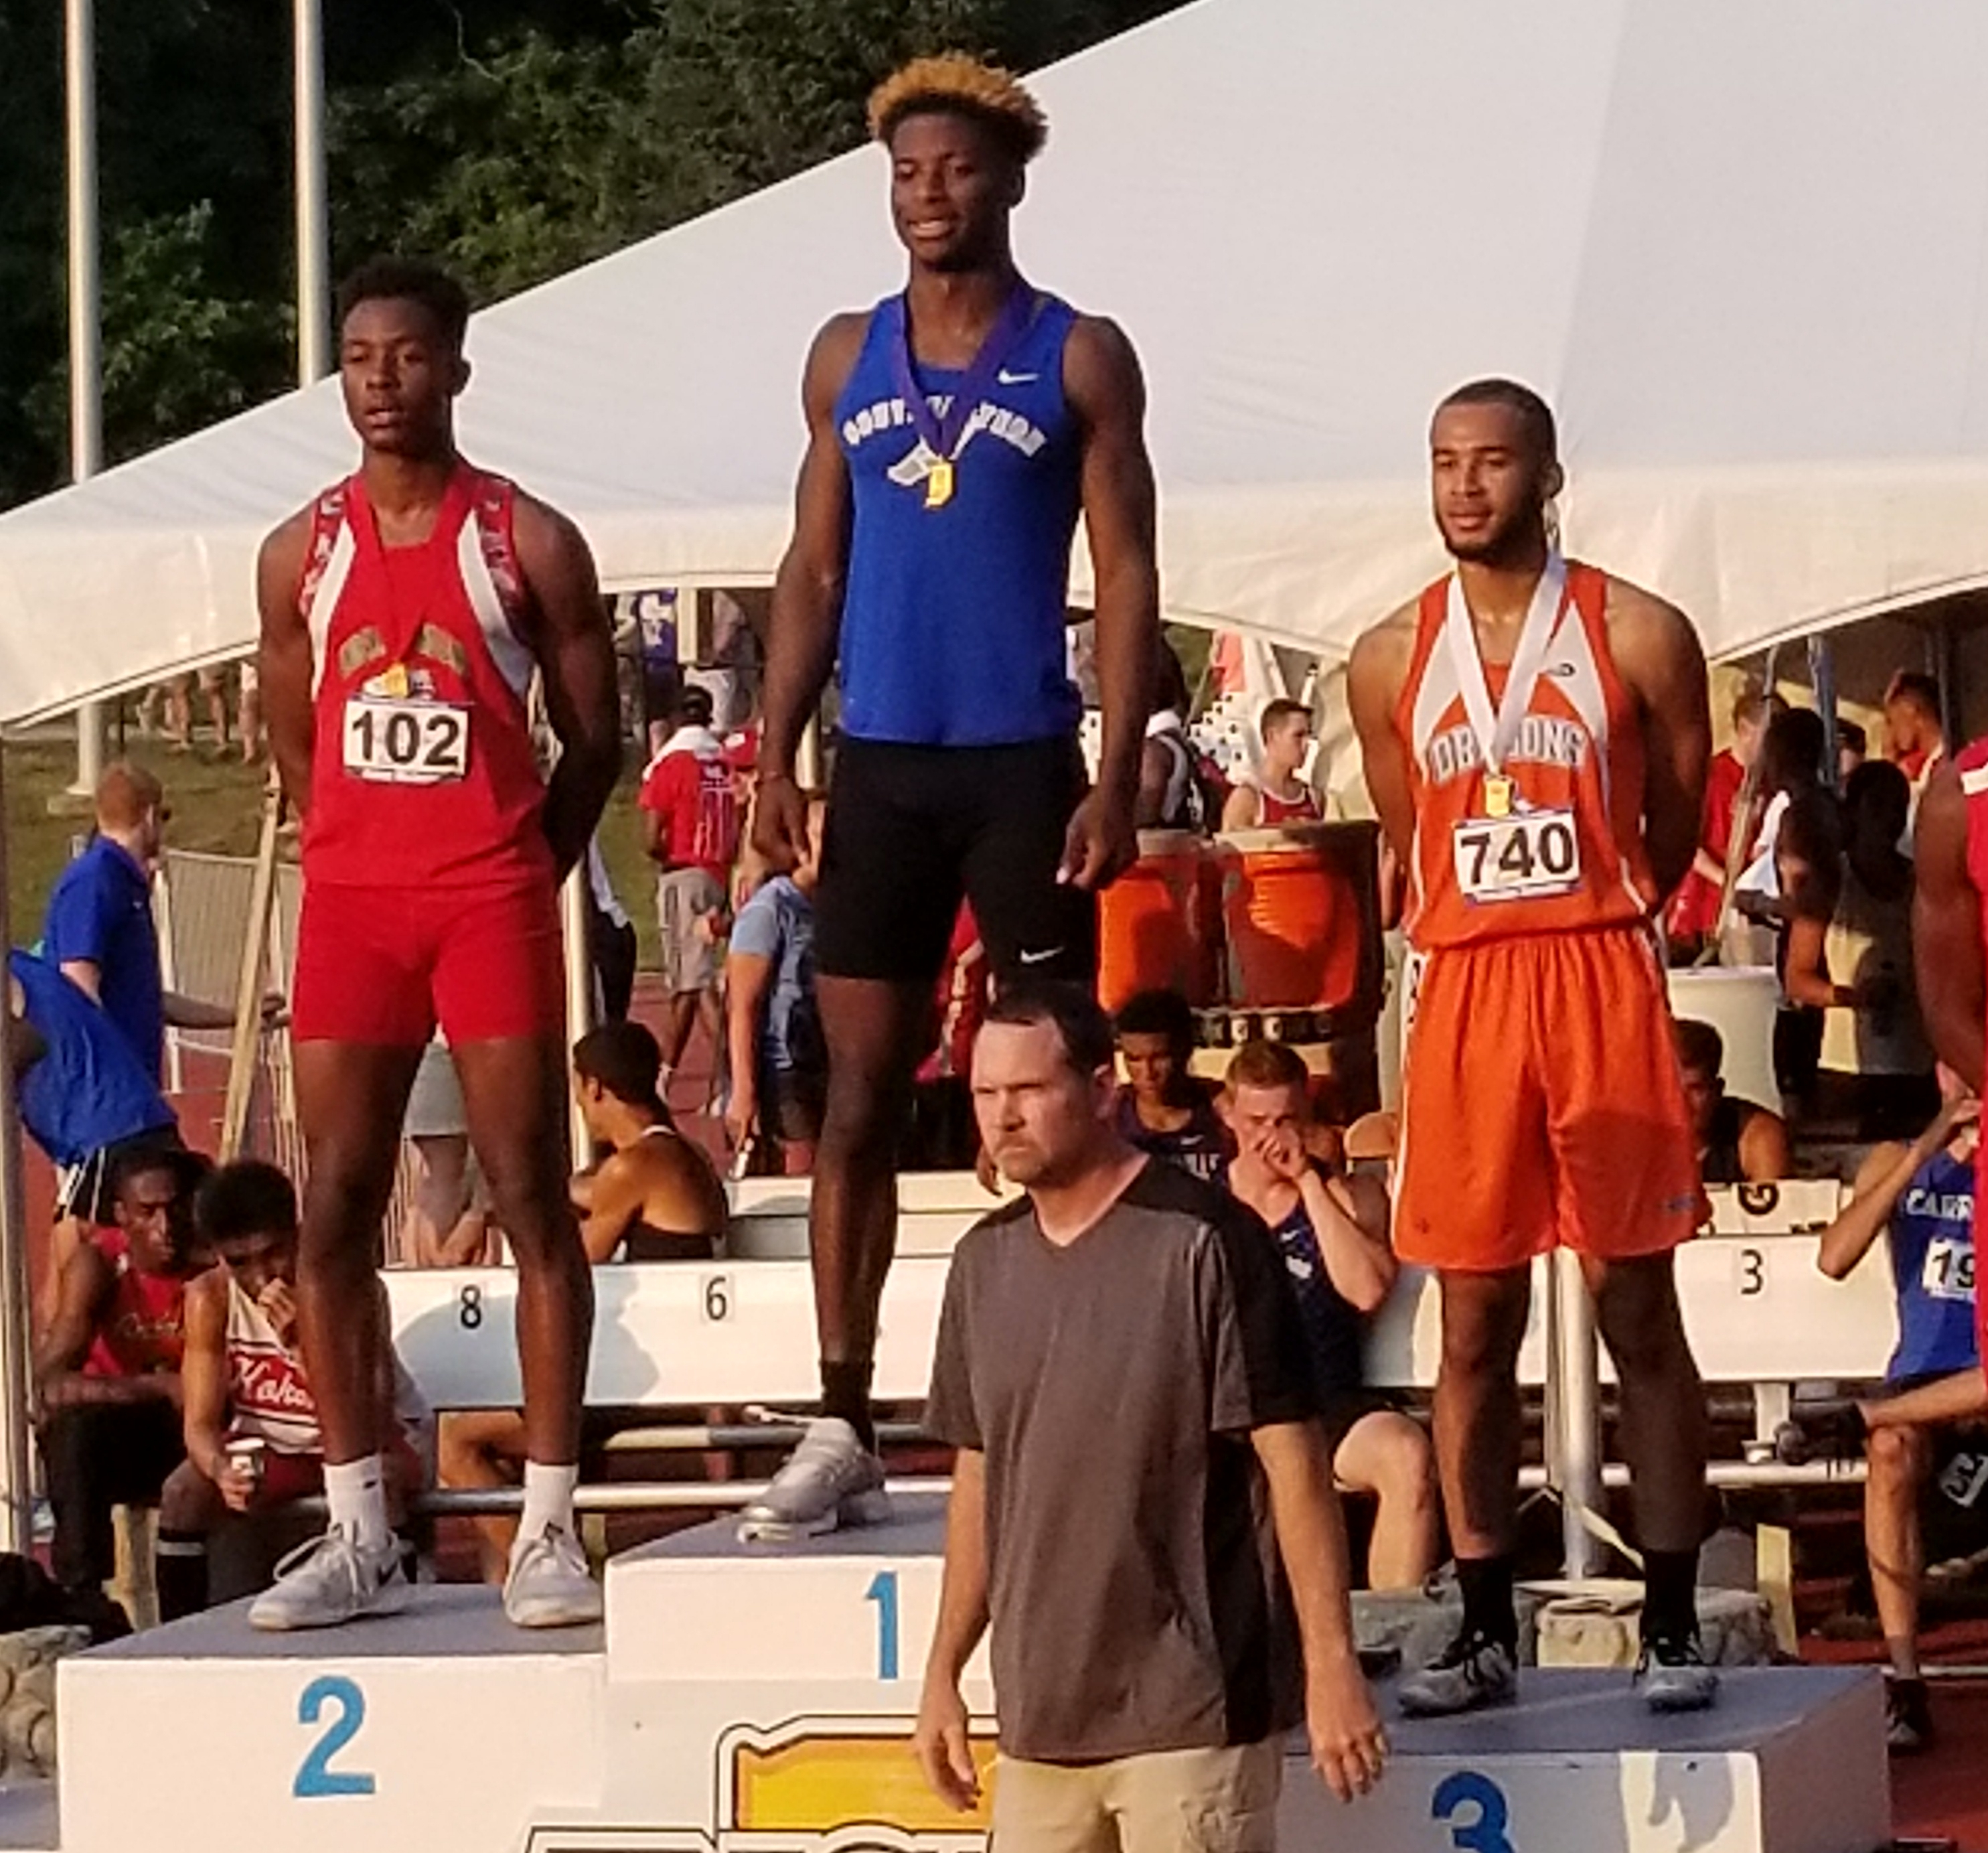 Track and Field: Gonzalez Finishes 3rd at State in 110 Hurdles